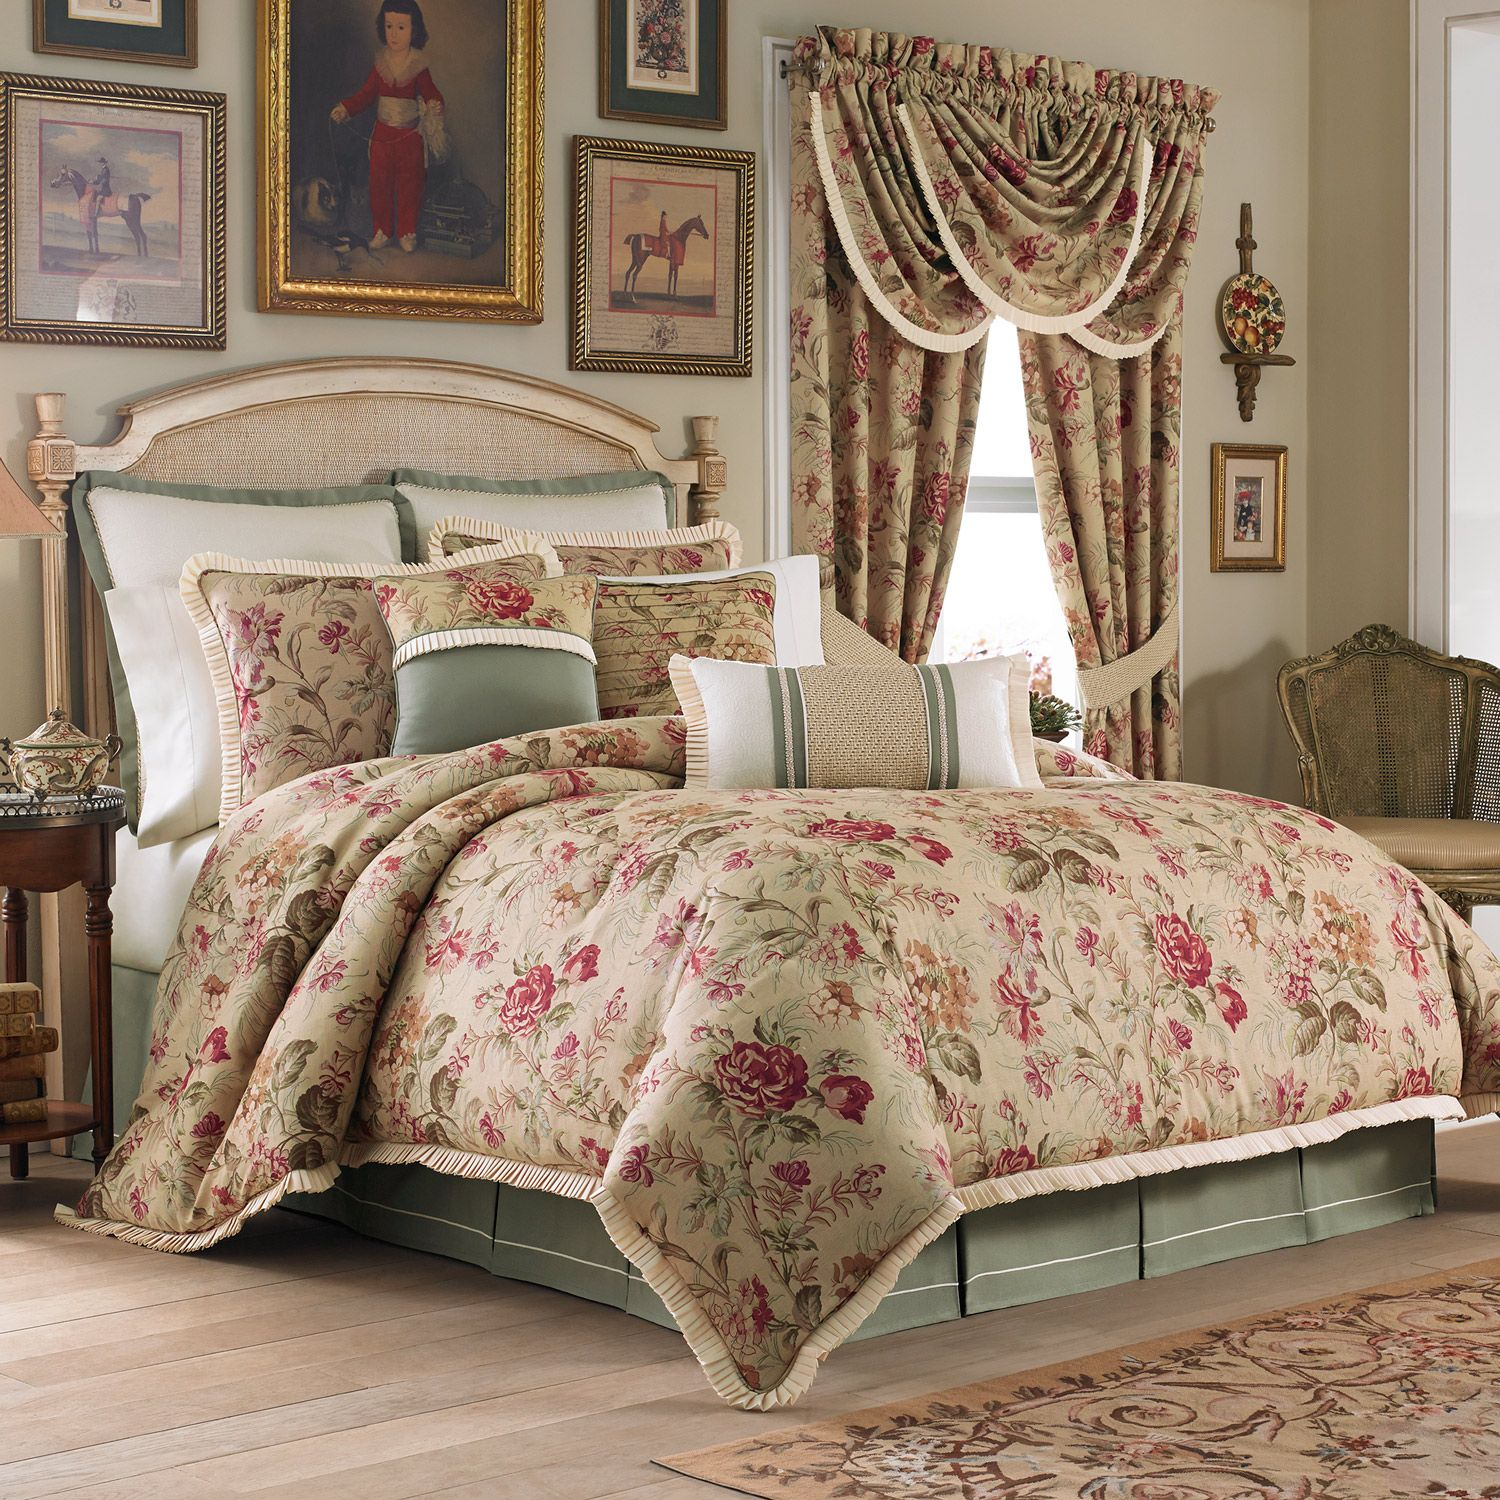 Mesmerizing california king bedding for bedroom design with california king bed frame